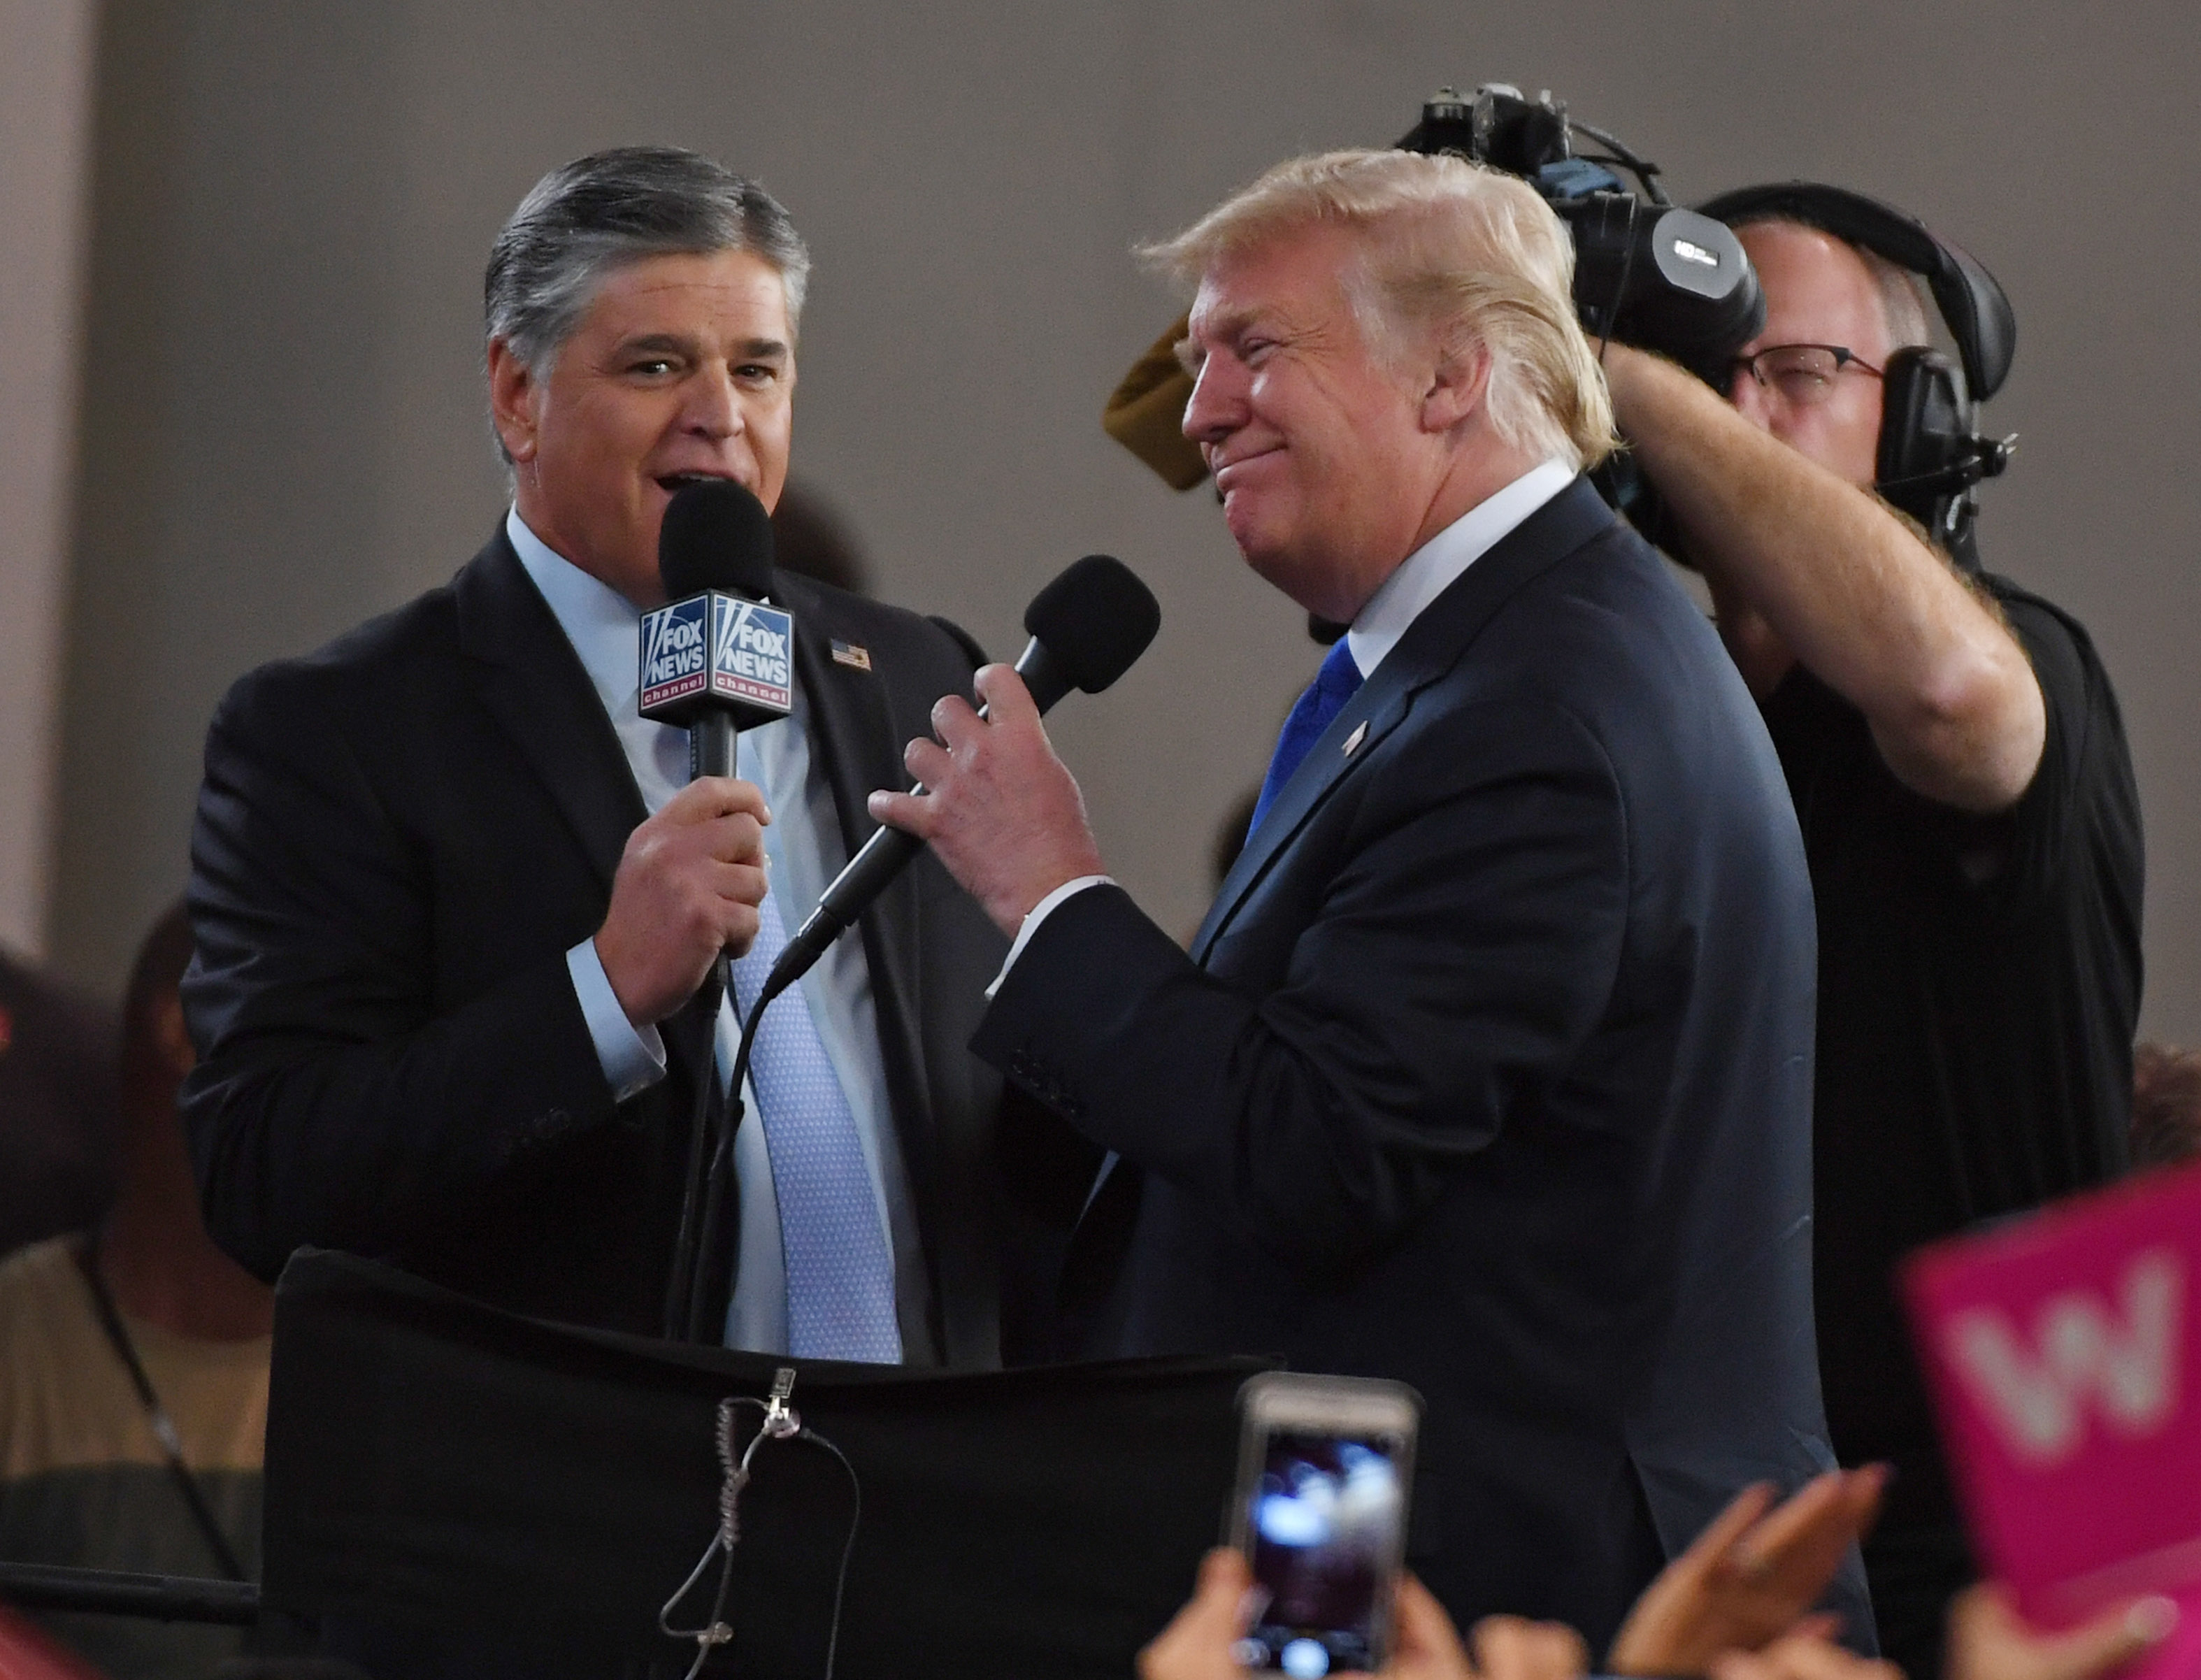 Why Trump is furiously attacking Fox News